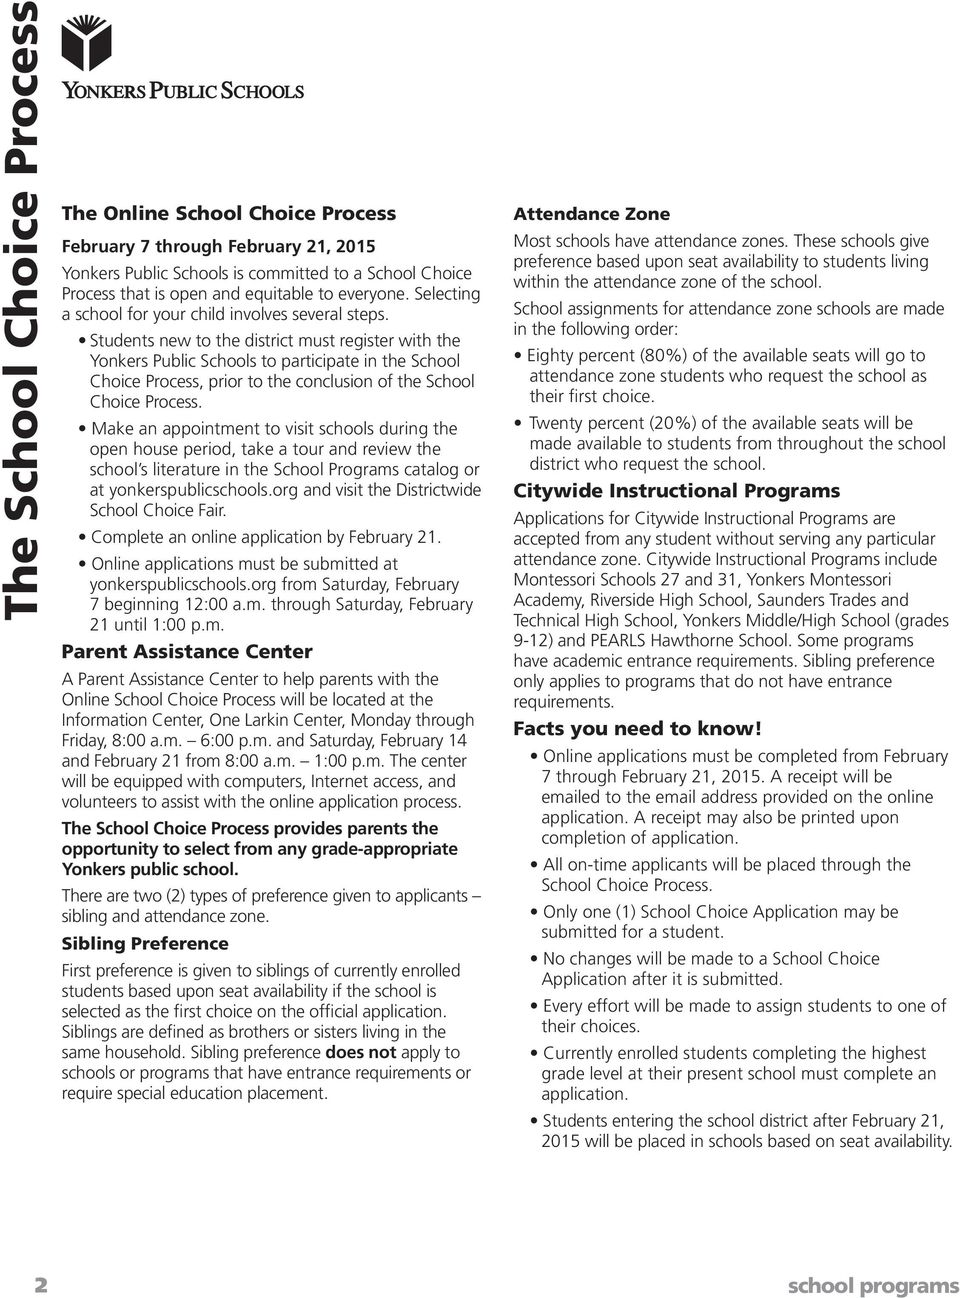 Students new to the district must register with the Yonkers Public Schools to participate in the School Choice Process, prior to the conclusion of the School Choice Process.